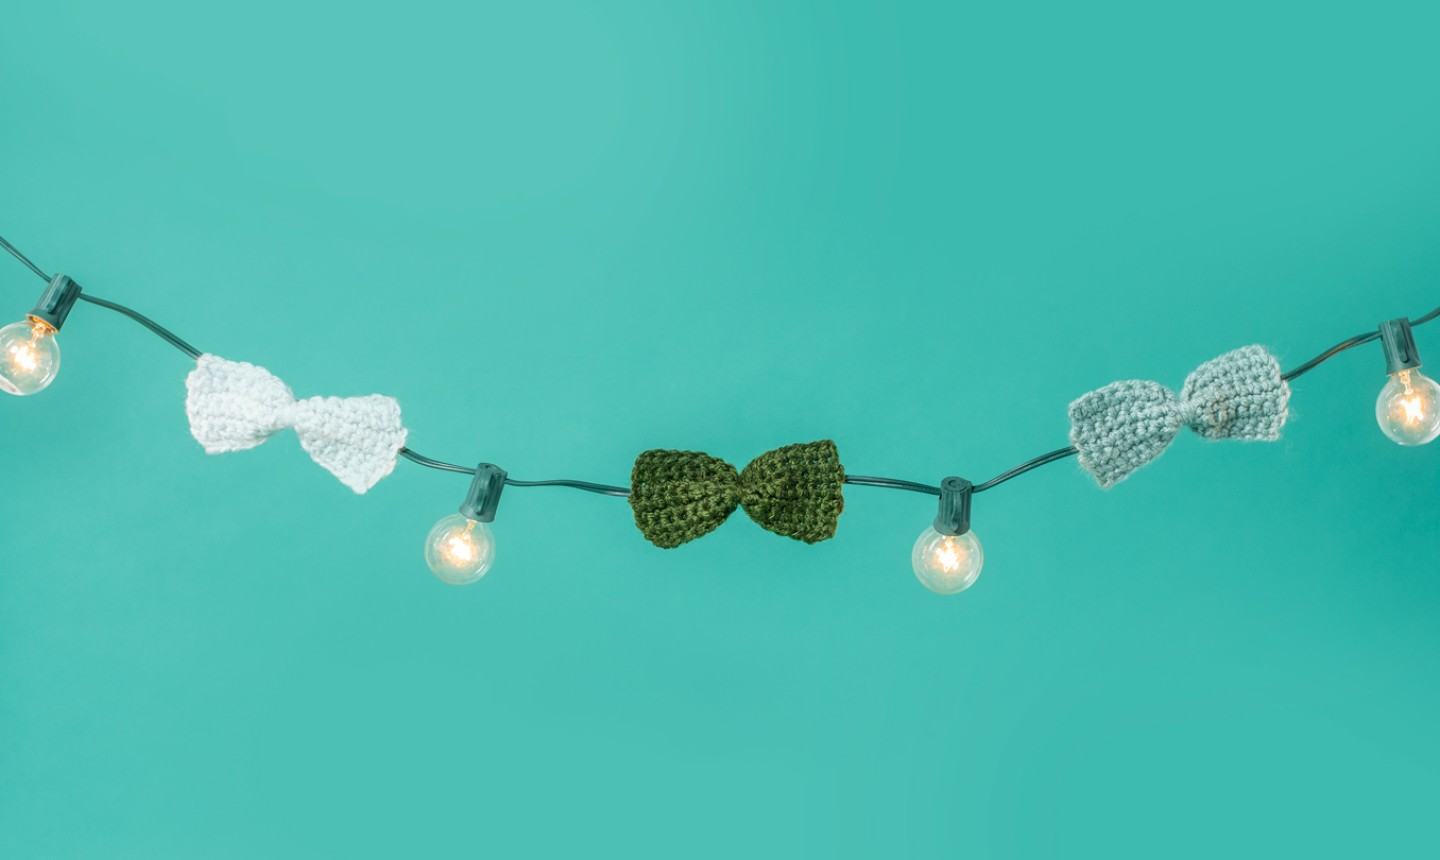 crochet bows on a light string